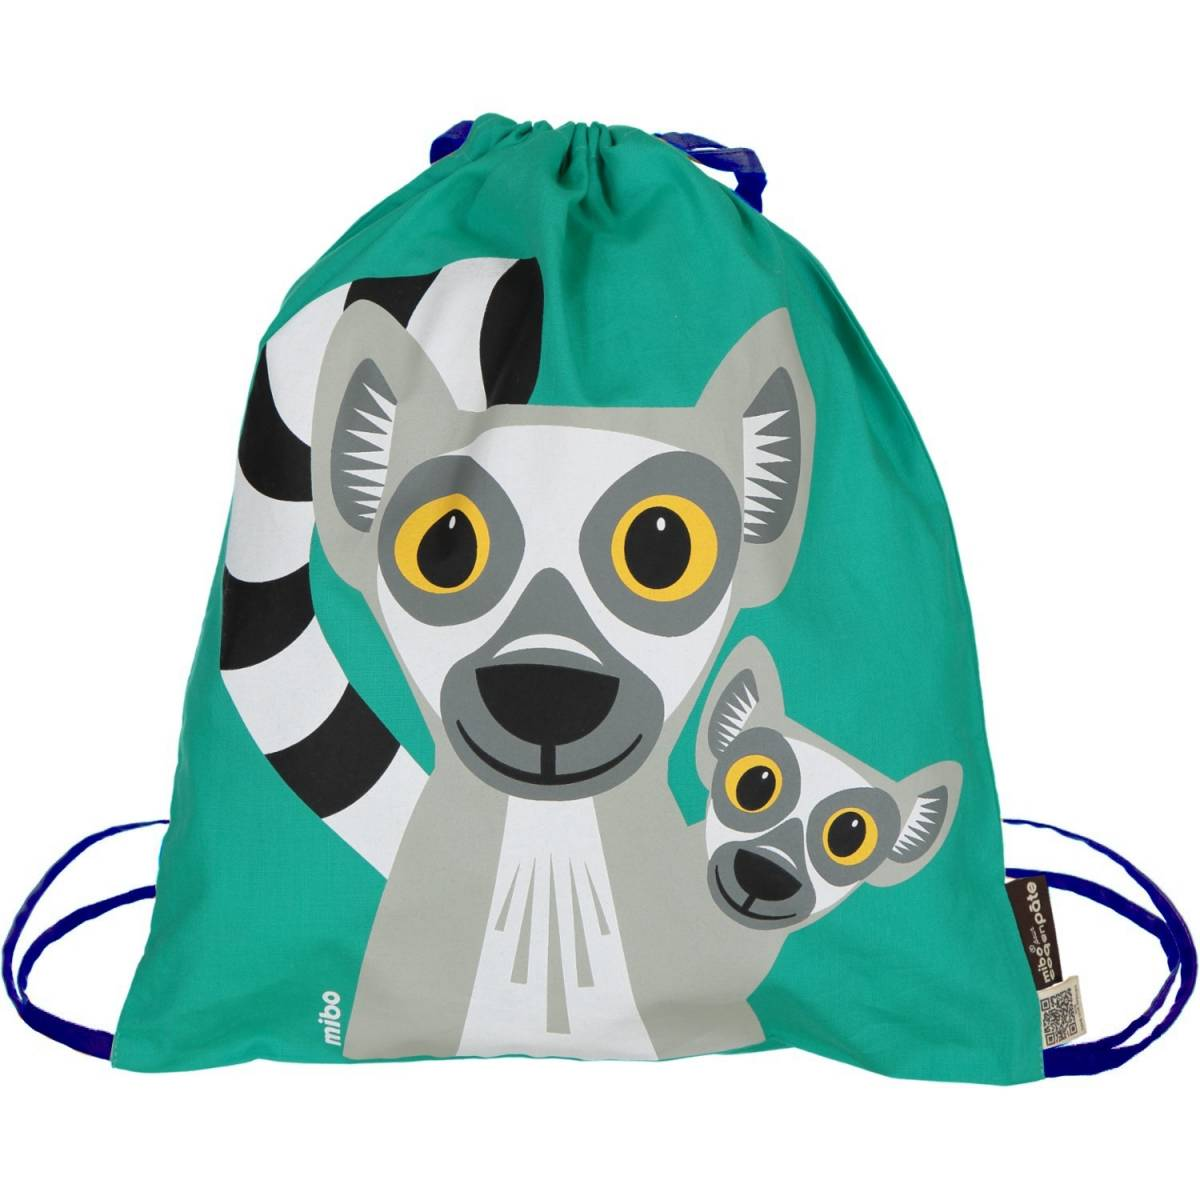 Lemur activity bag